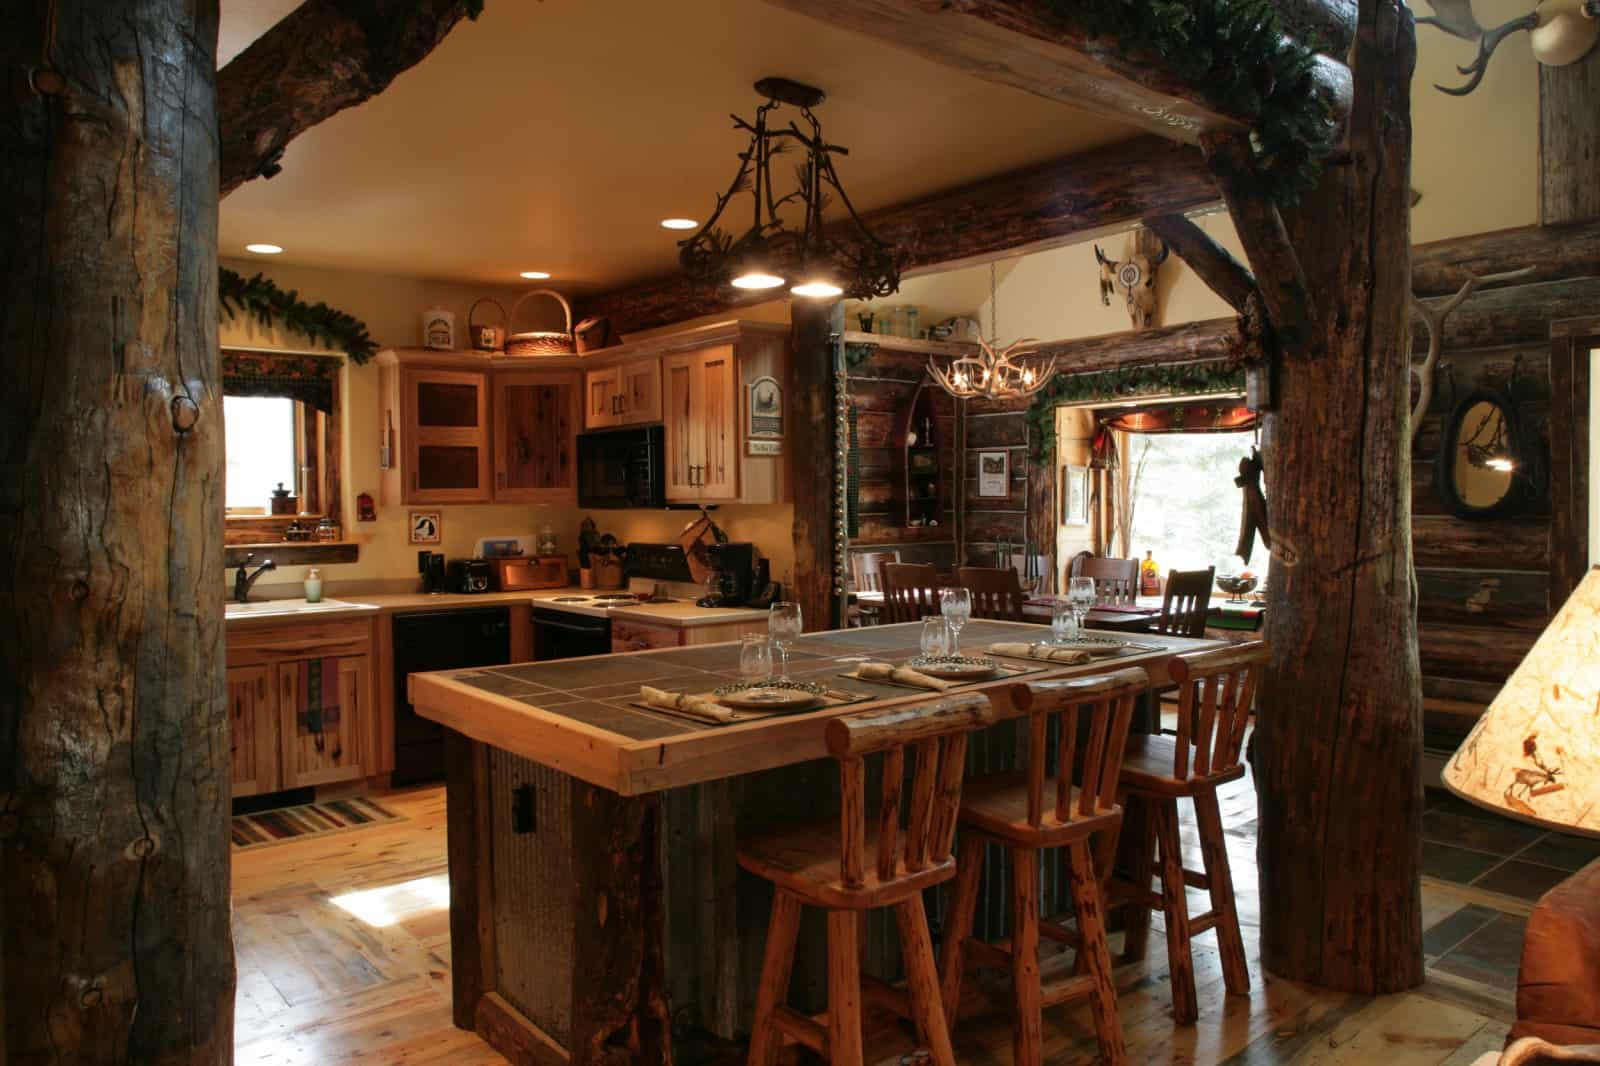 Interior design trends 2017 rustic kitchen decor house for Interior designs for log homes